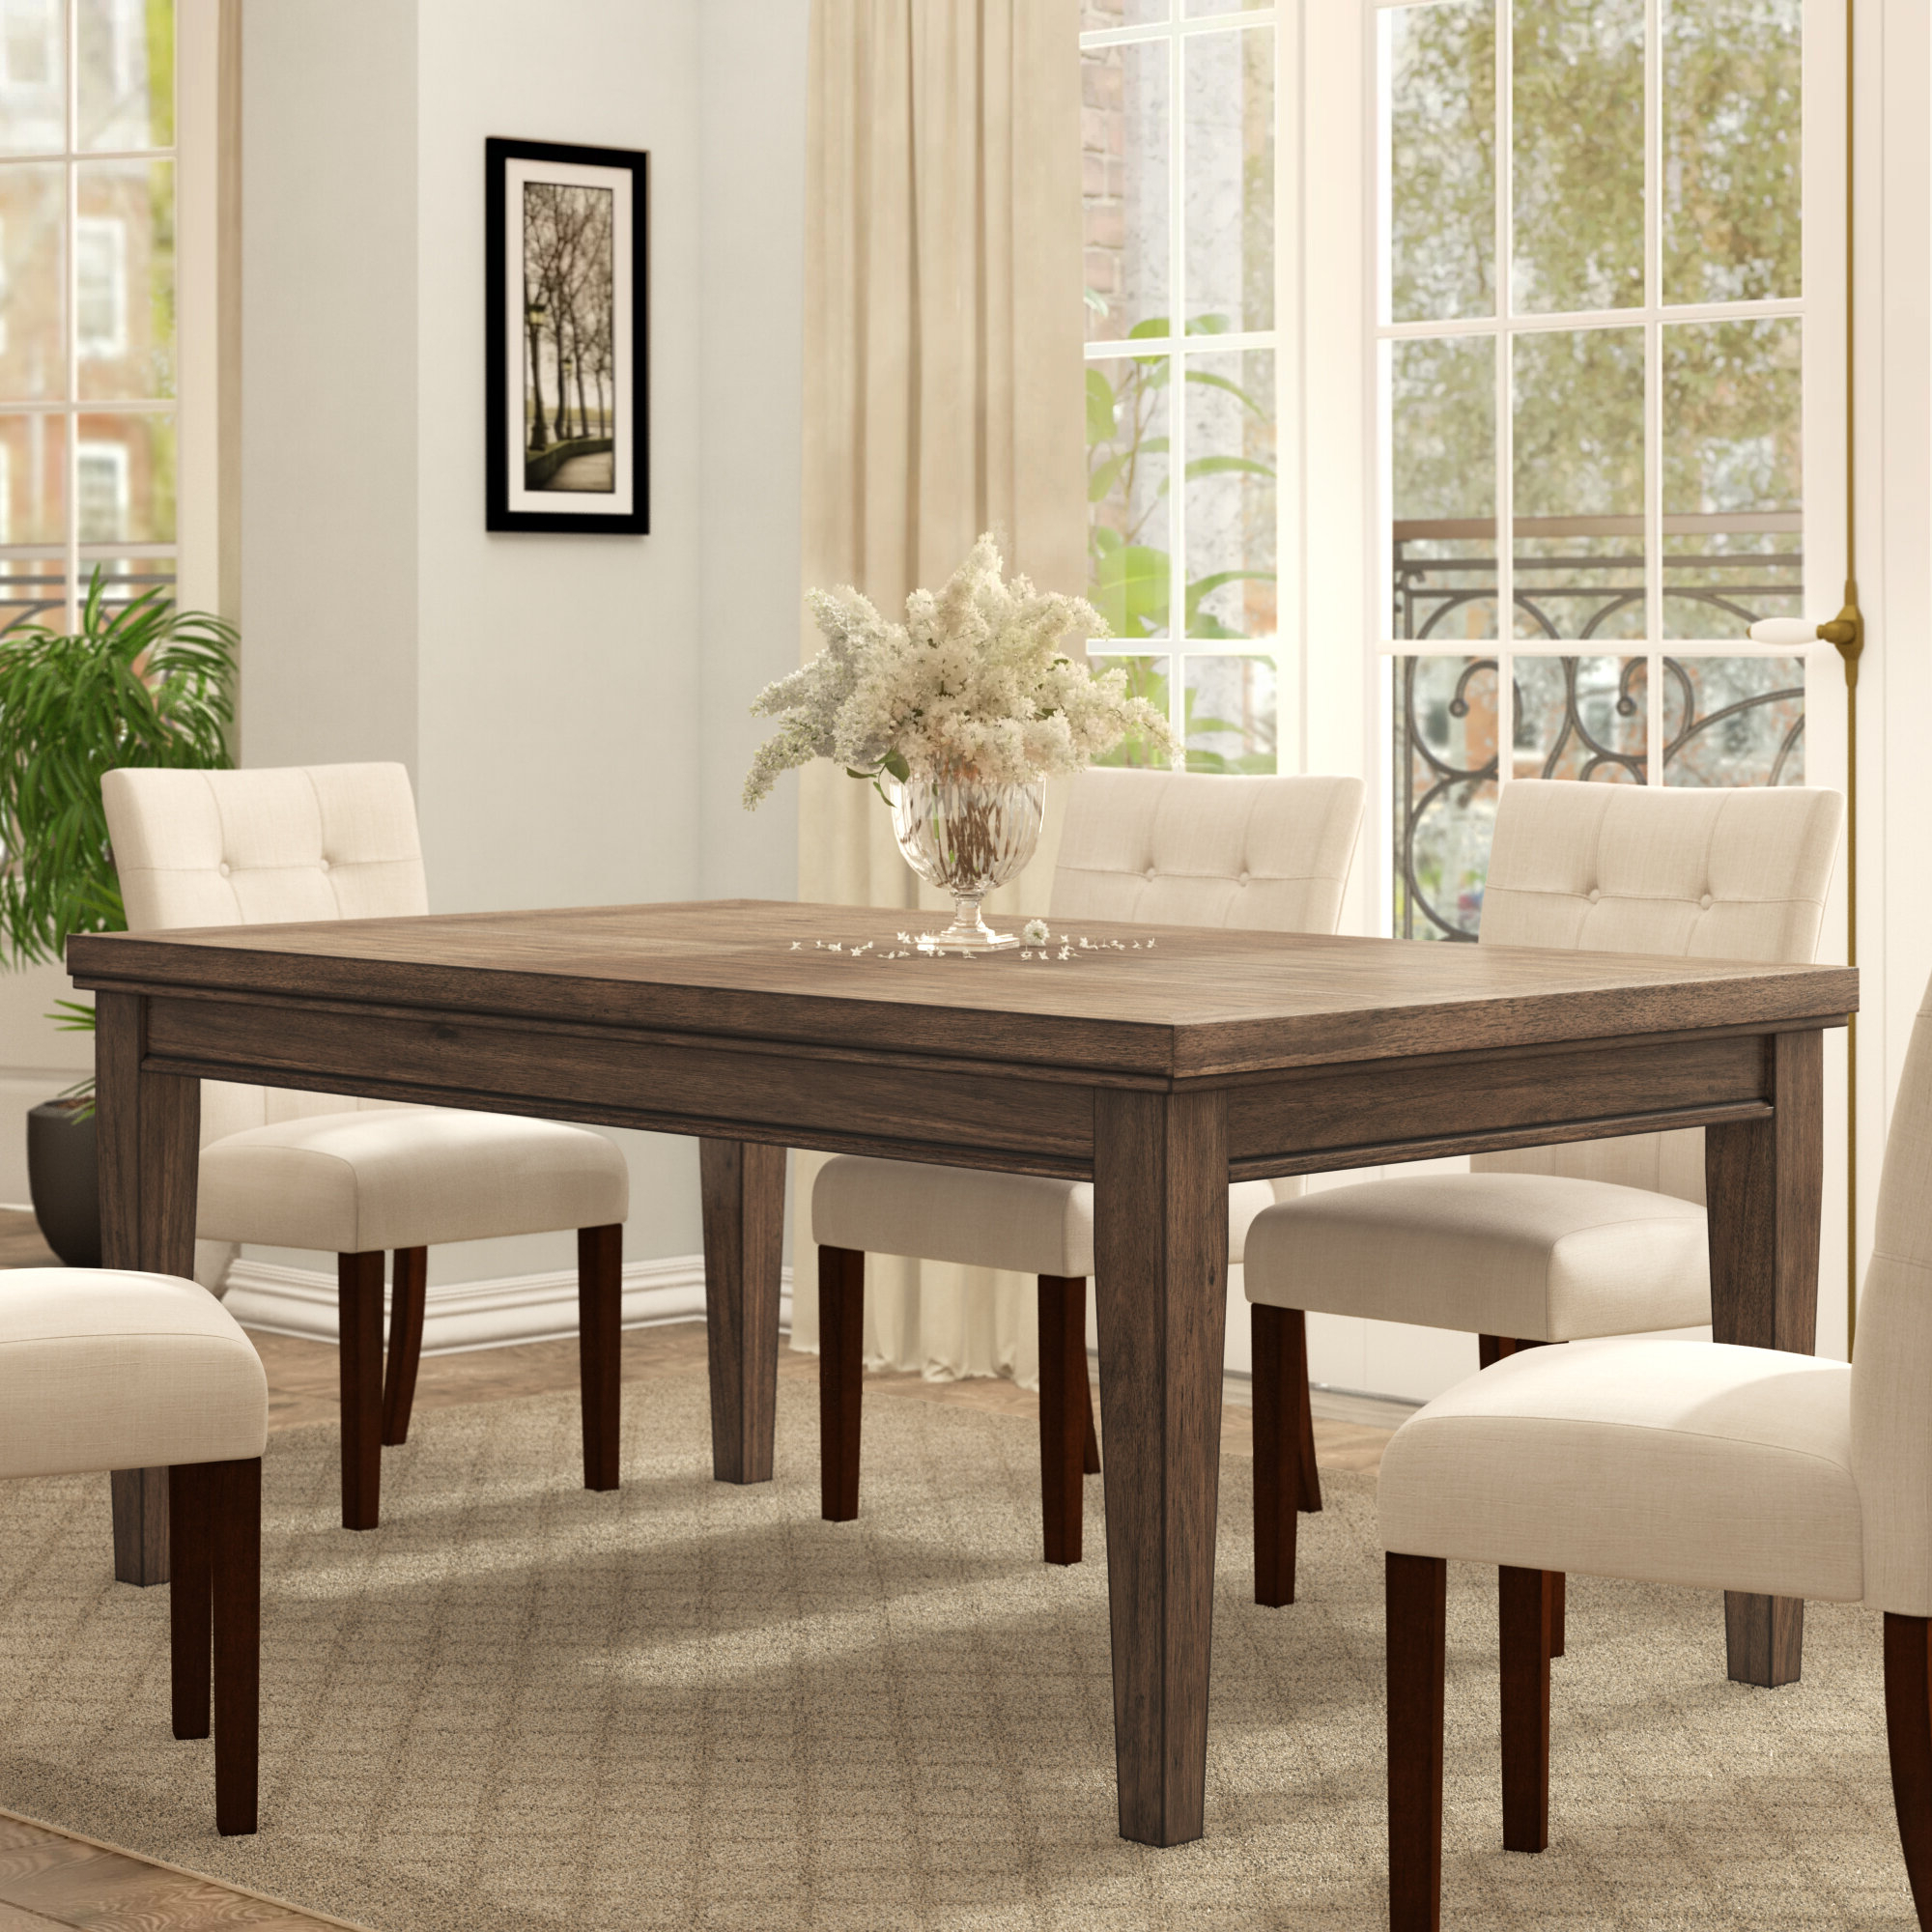 Ephraim 5 Piece Dining Sets Inside Newest Three Posts Penwortham Dining Table (View 15 of 25)